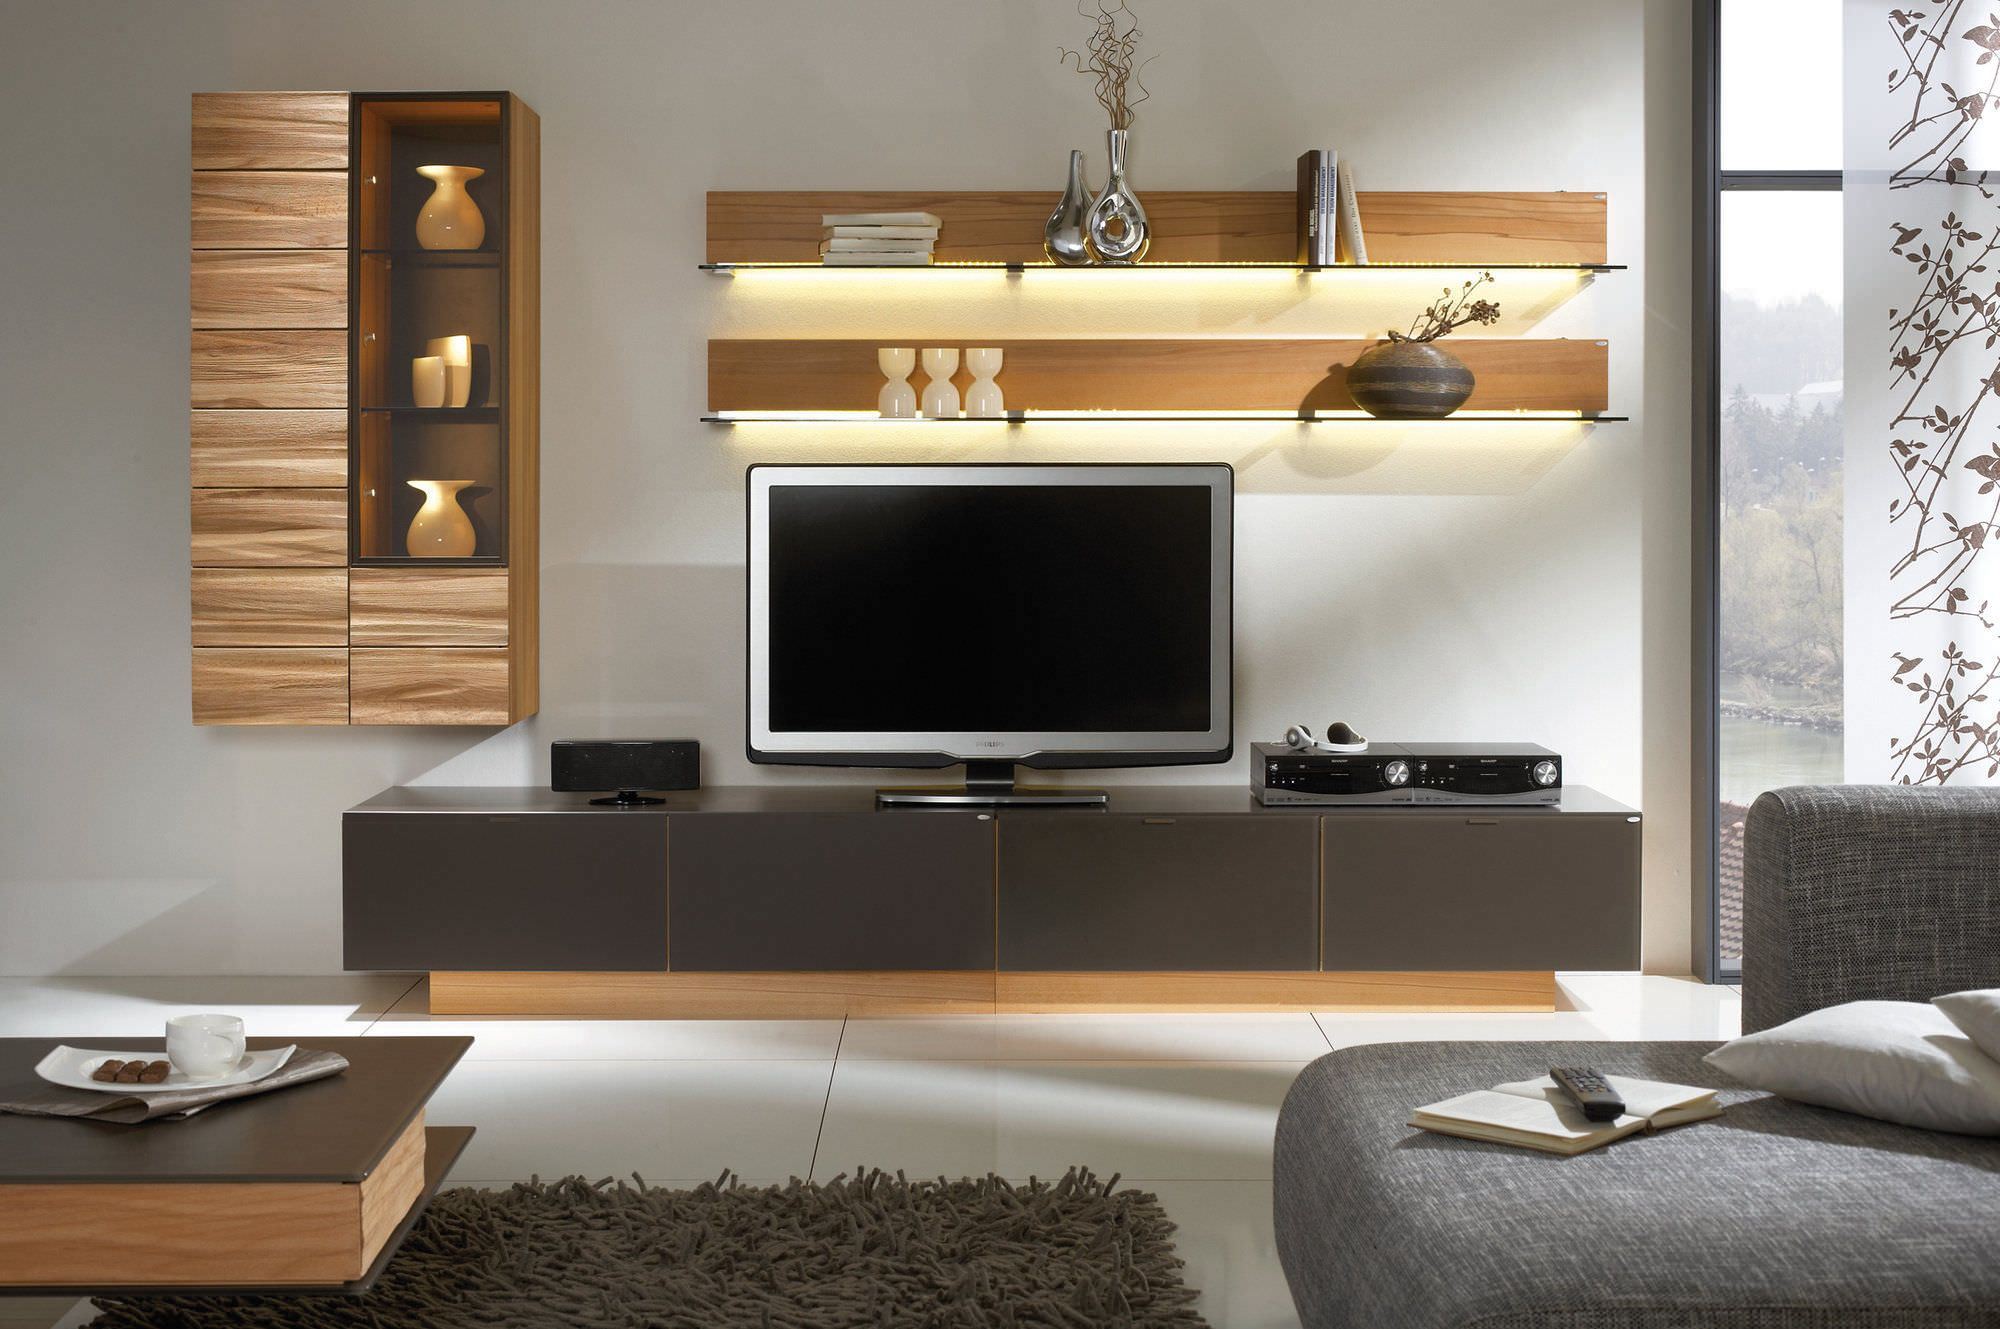 Awesome white brown wood glass cool design contemporary tv for Contemporary tv unit designs for living room